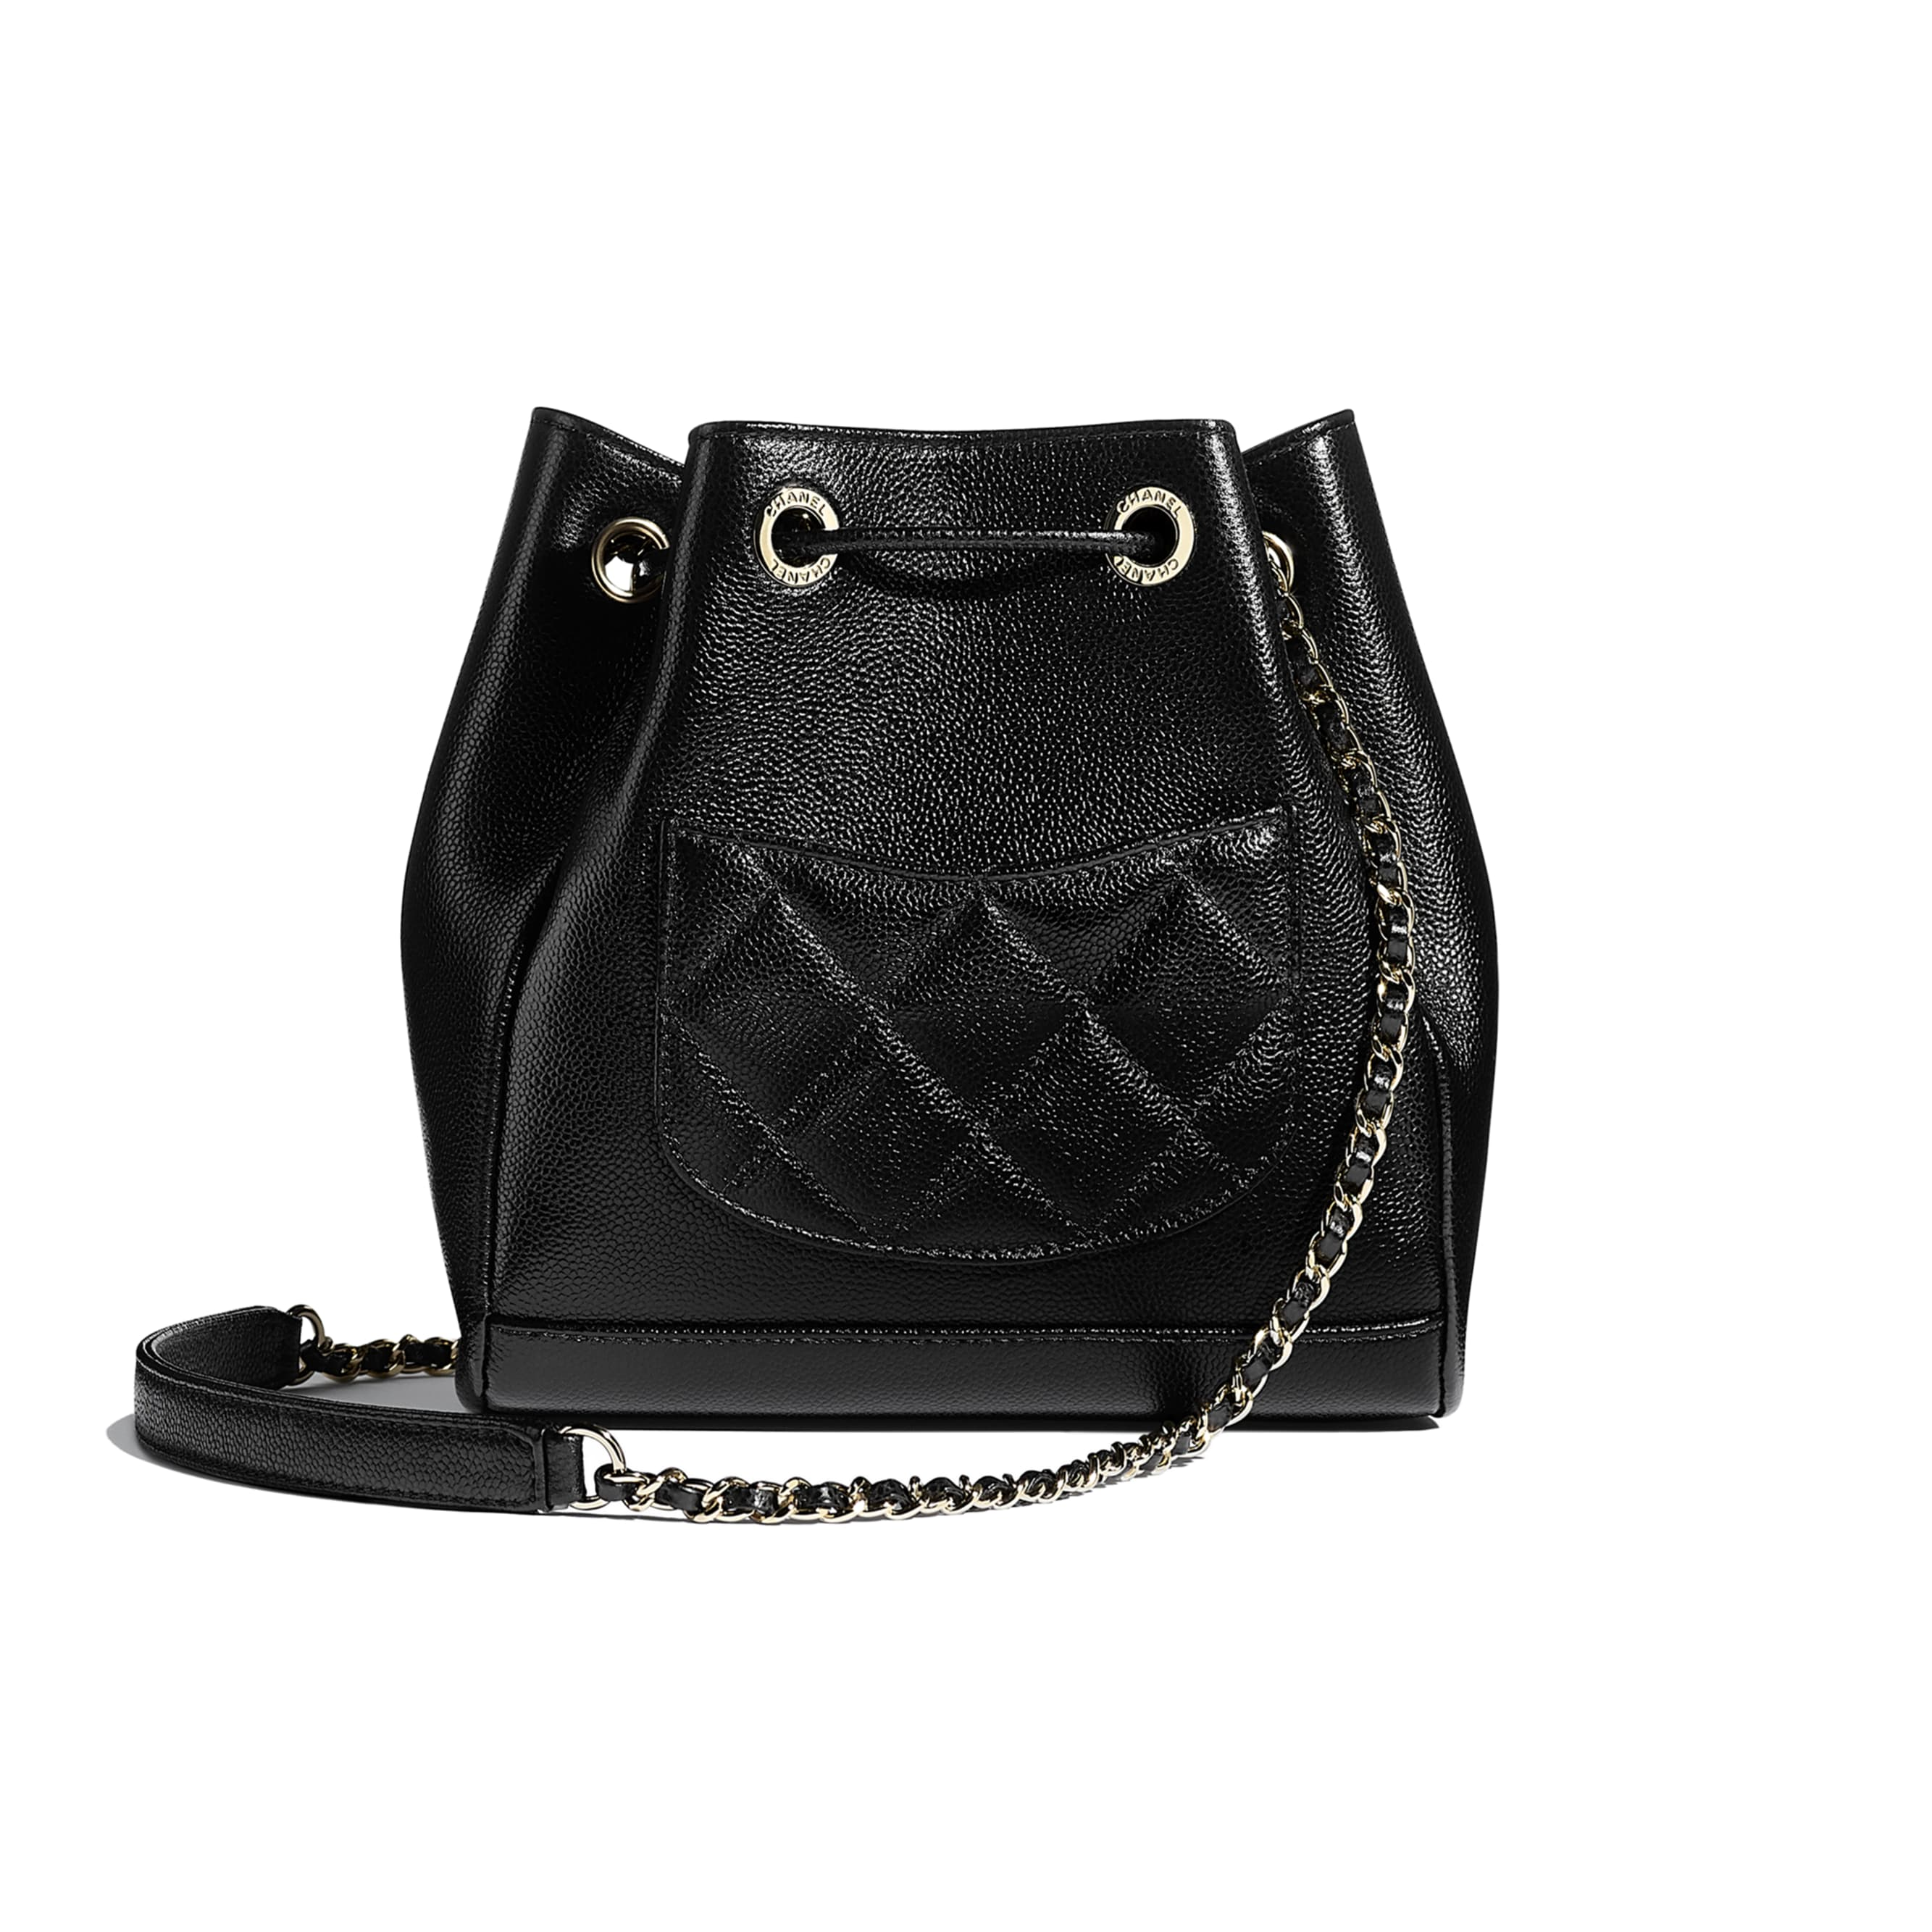 Drawstring Bag - Black - Grained Calfskin & Gold-Tone Metal - CHANEL - Alternative view - see standard sized version